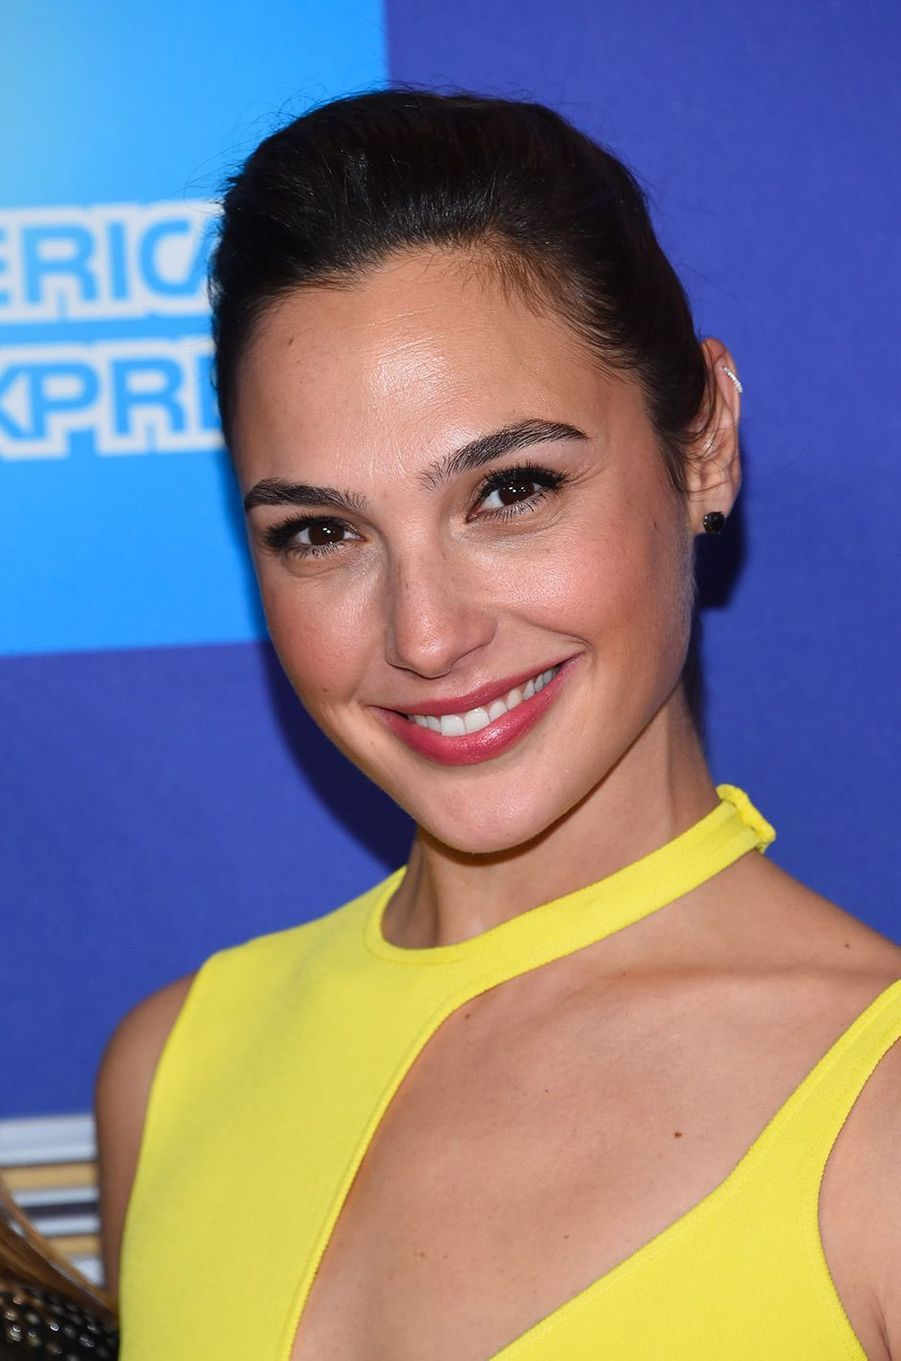 Gal Gadot au Festival International du film de Palm Springs, mardi 2 janvier